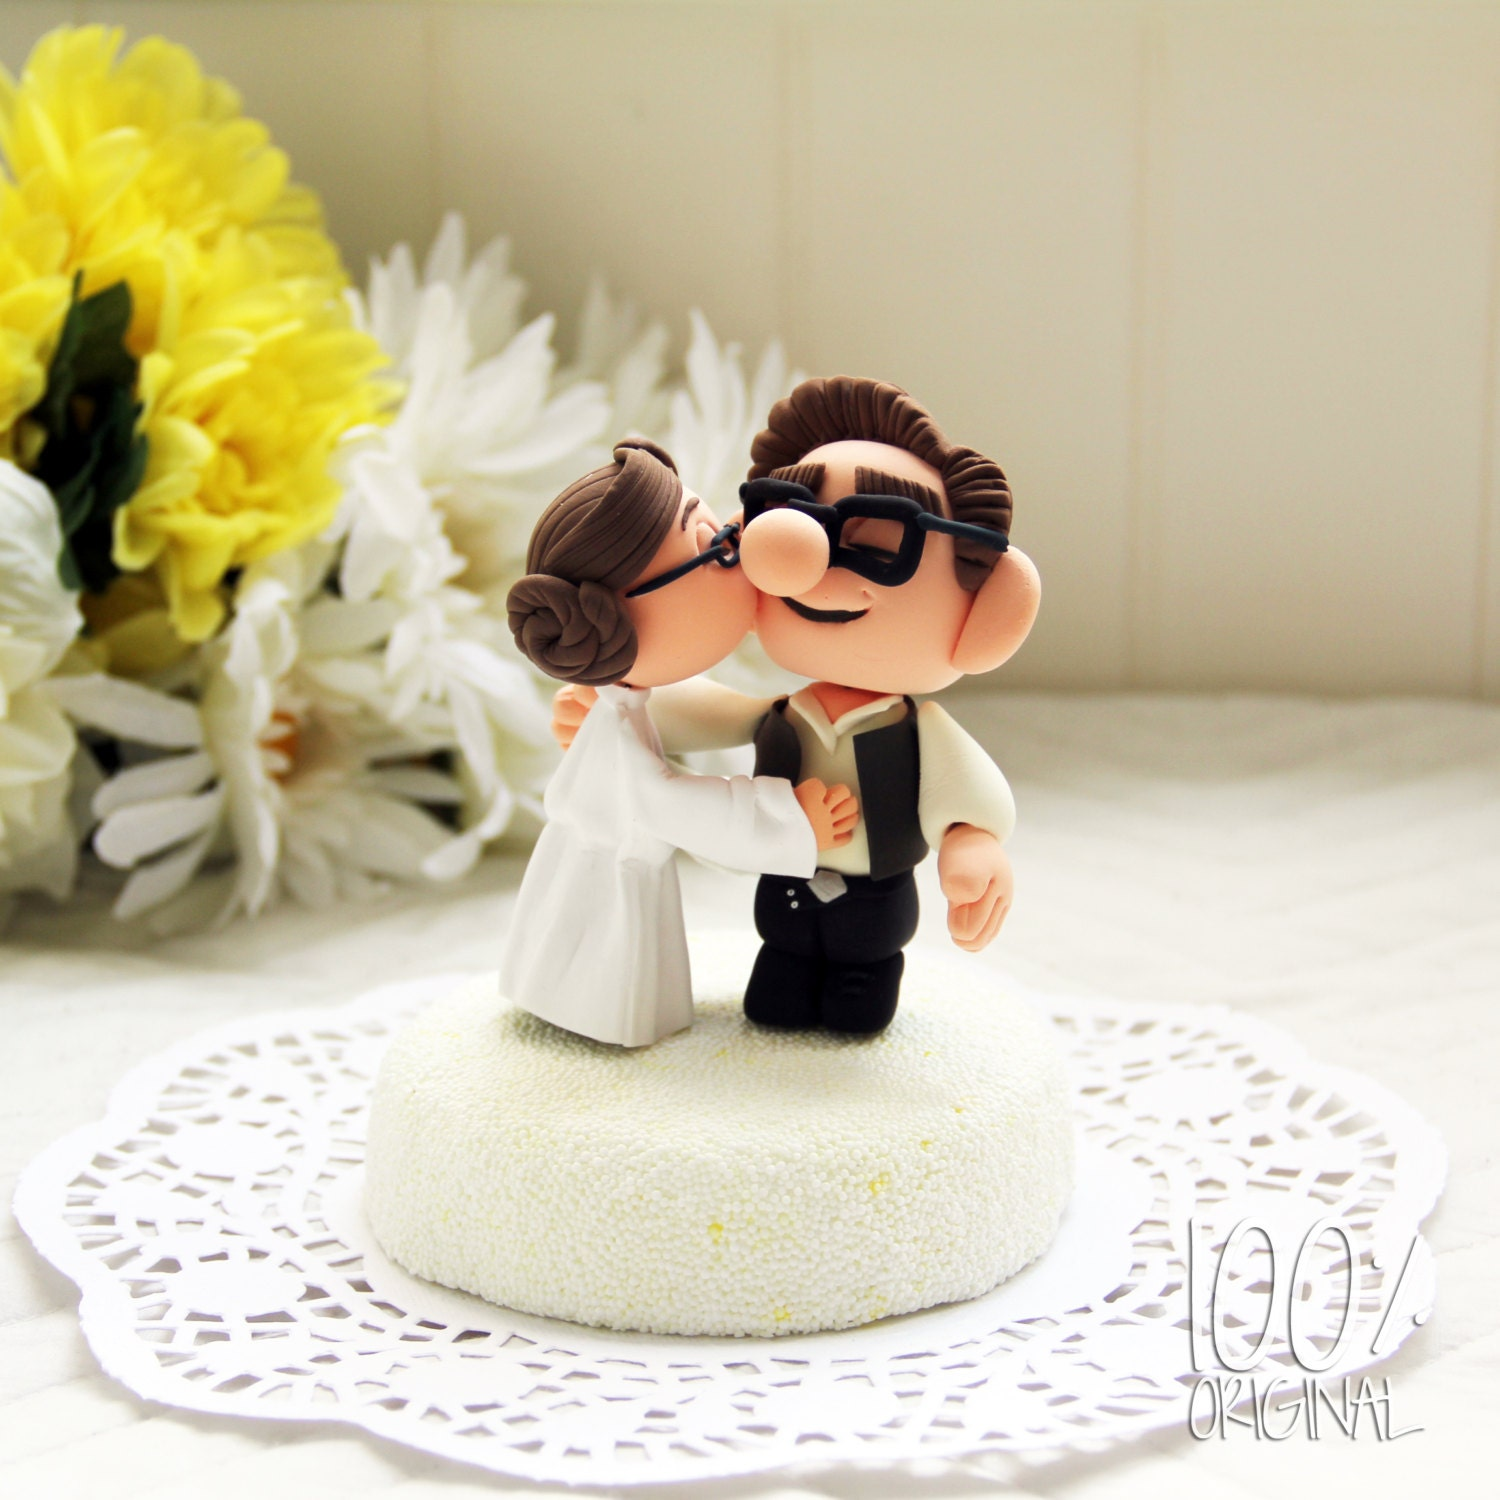 Star Wars Wedding Cake: Custom Wedding Cake Topper Star Wars Kissing Couple UP